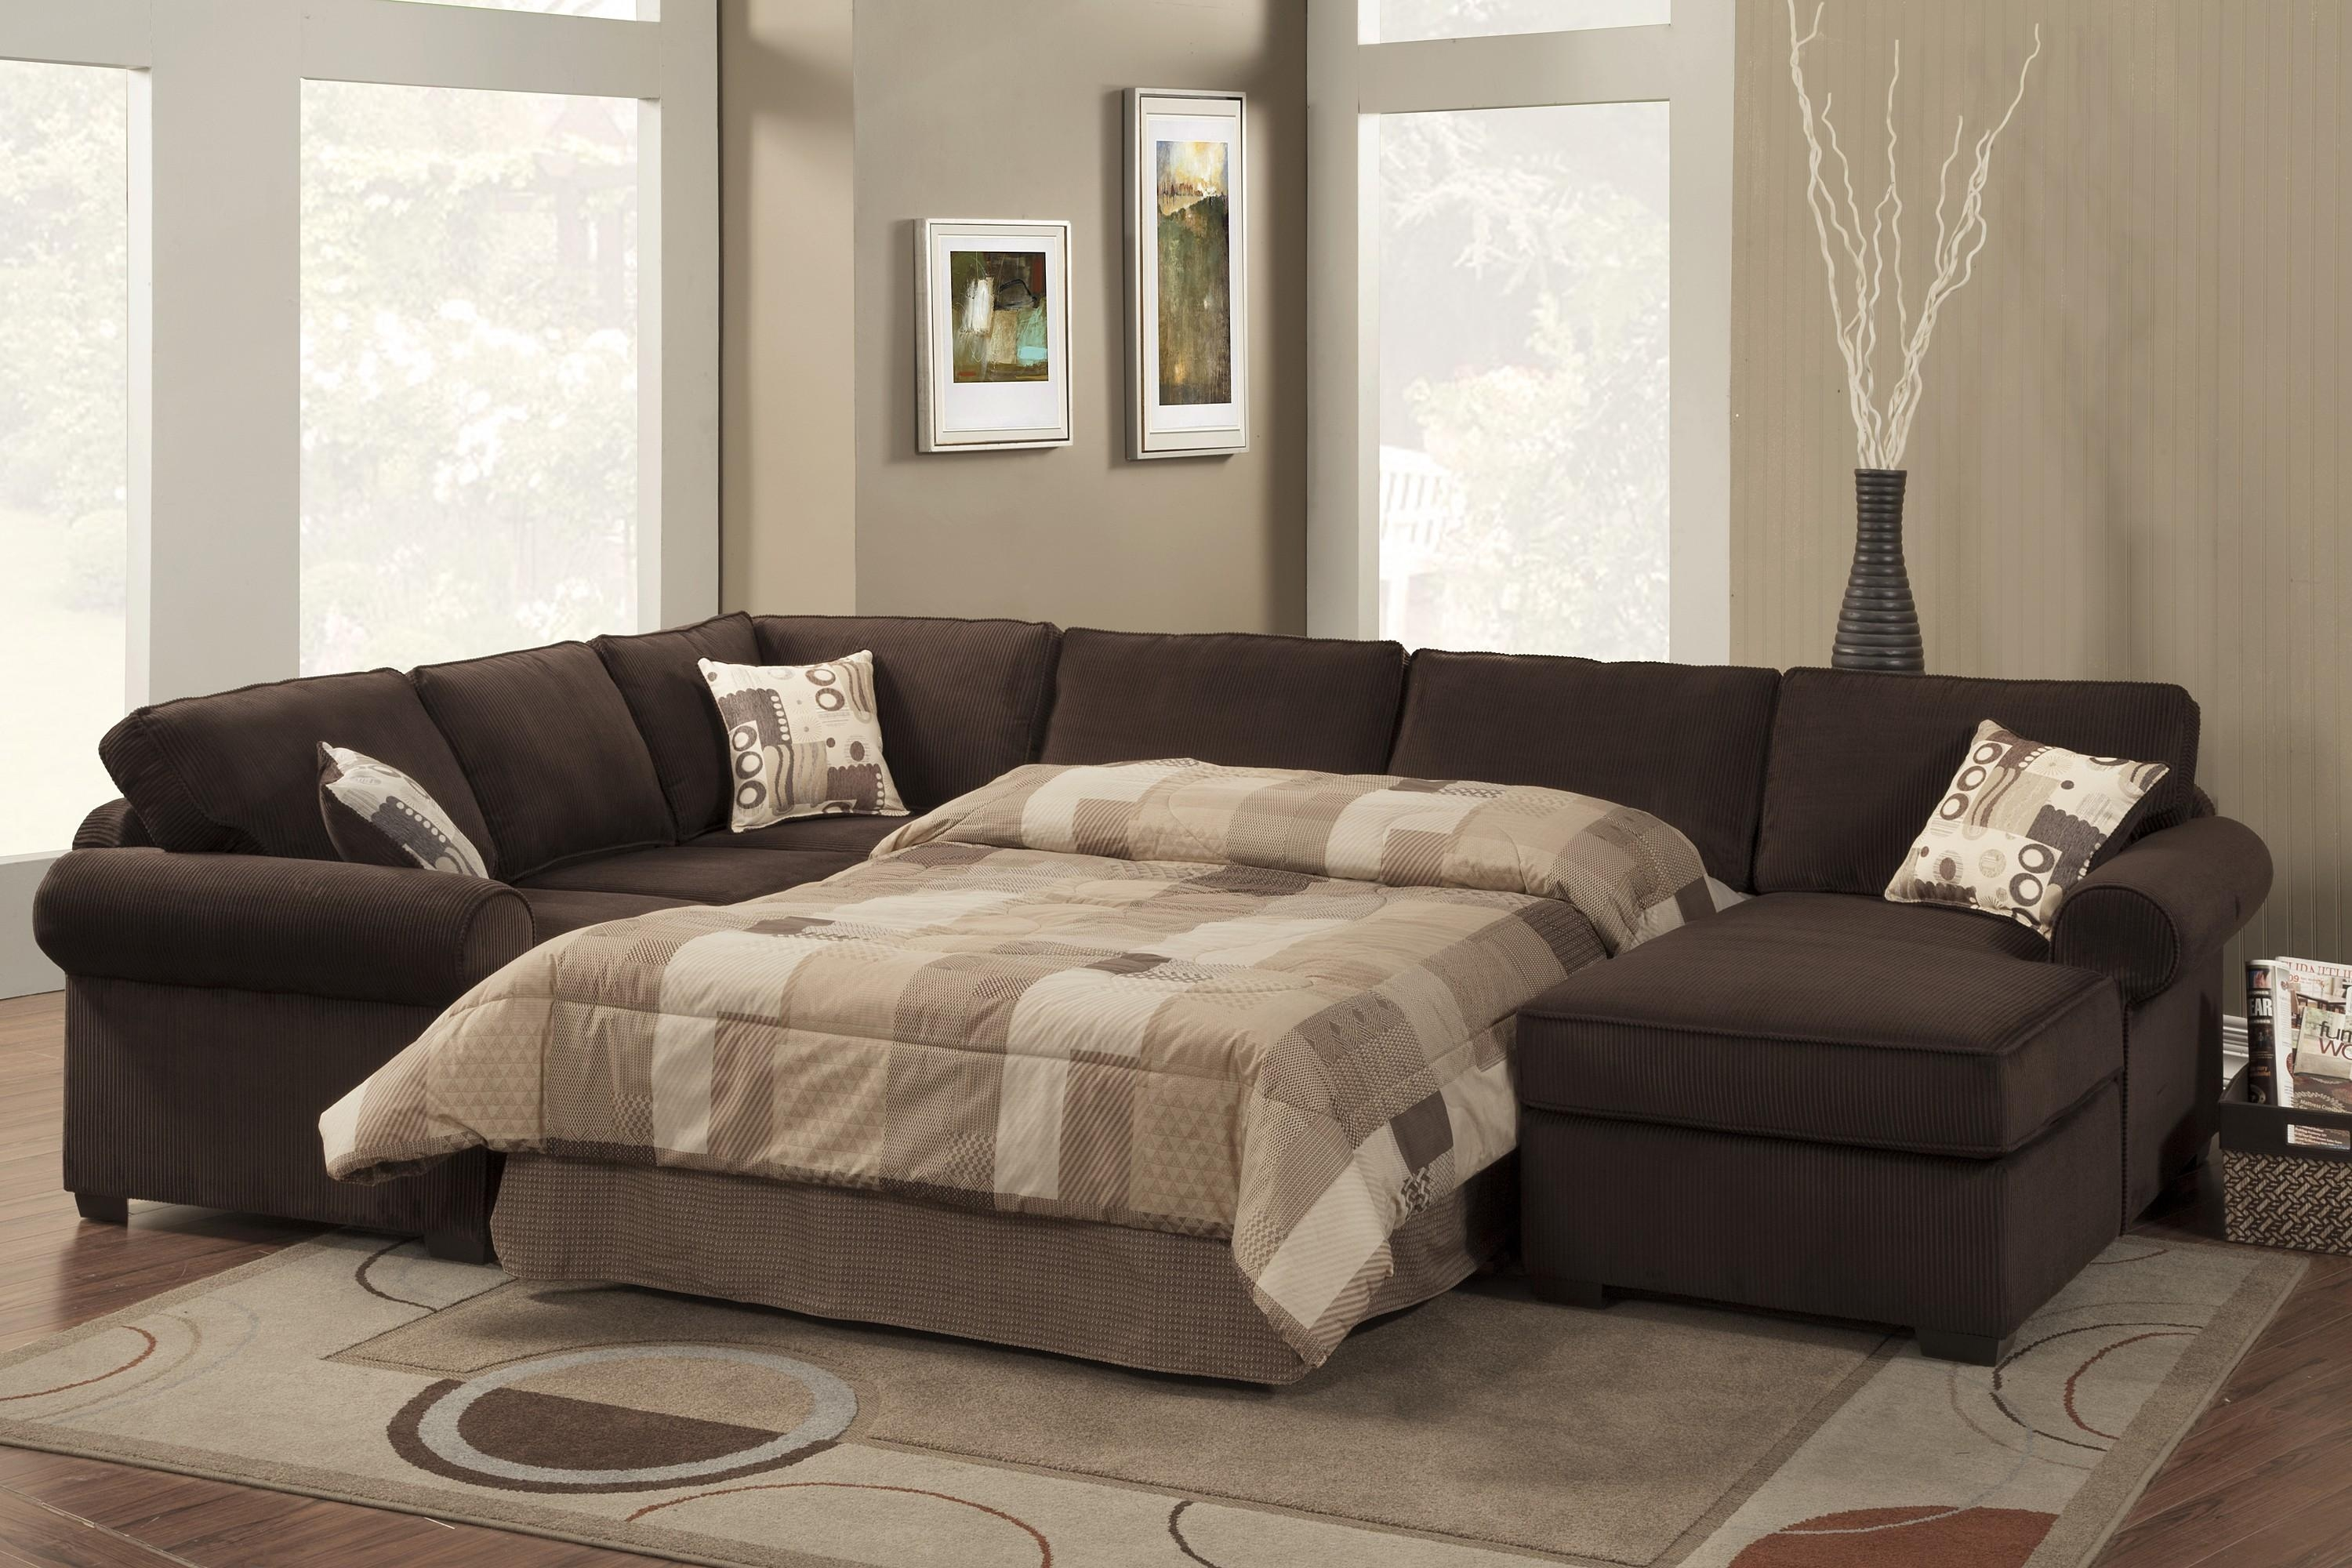 Furniture: Modern And Contemporary Sofa Sectionals For Living Room Regarding Red Sectional Sleeper Sofas (Image 5 of 22)